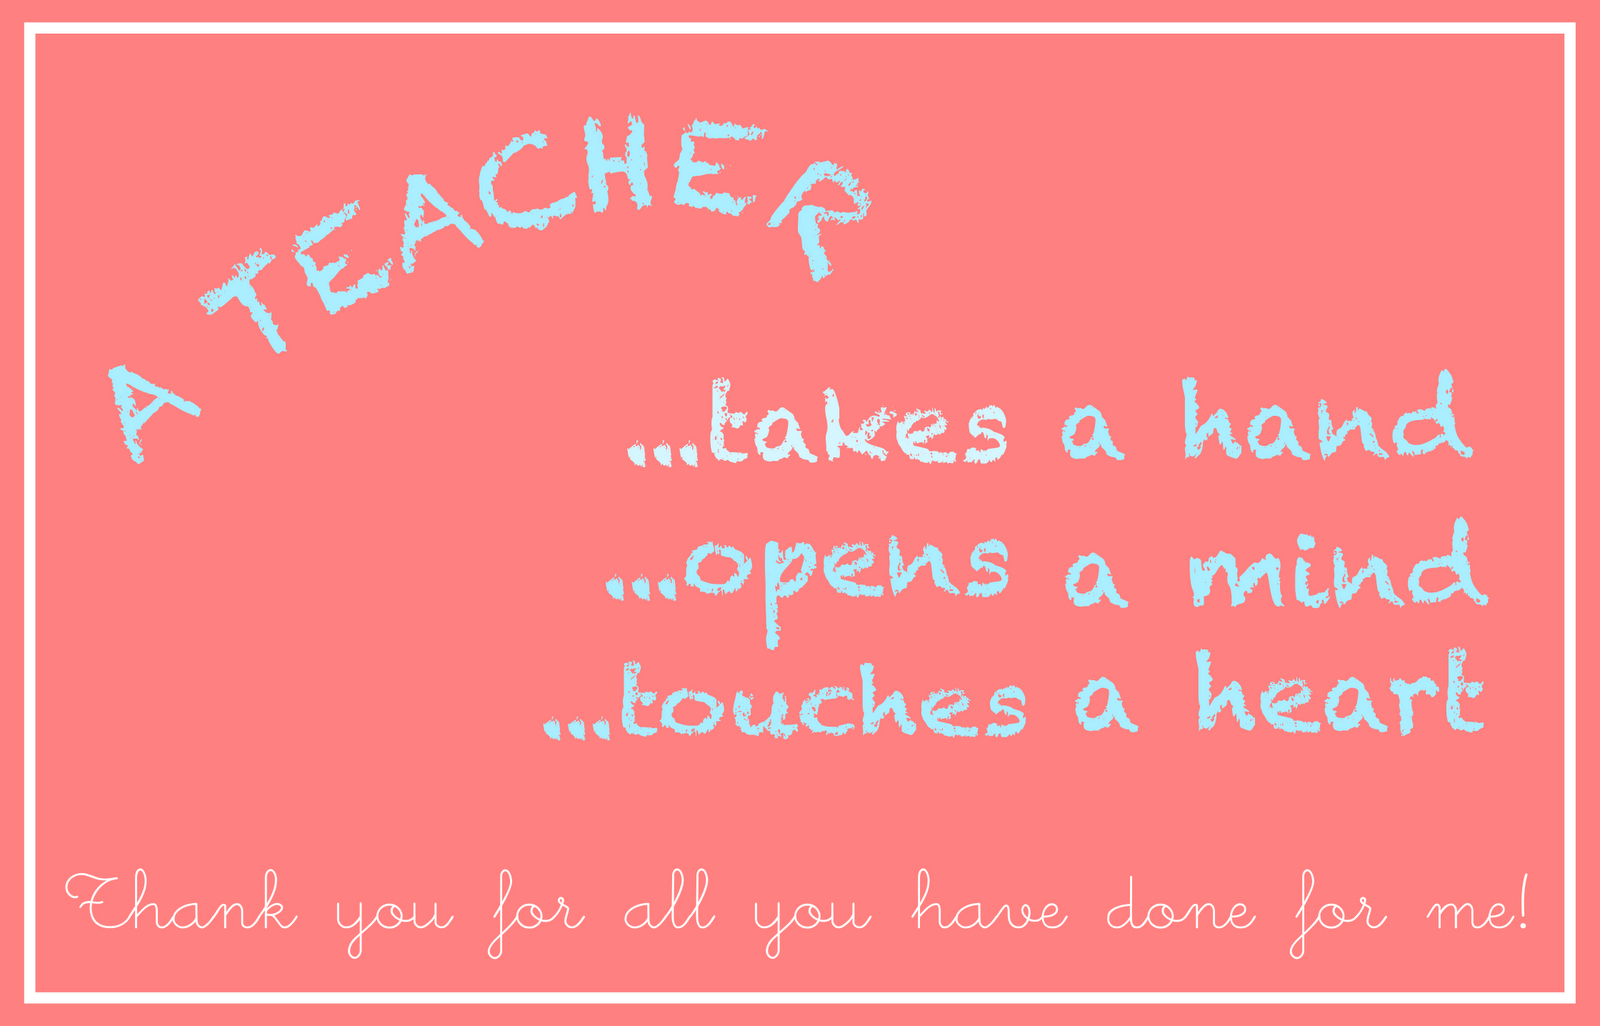 Free Printable Teacher Appreciation Card - An Lehrer Gerichtete - Free Printable Teacher Appreciation Cards